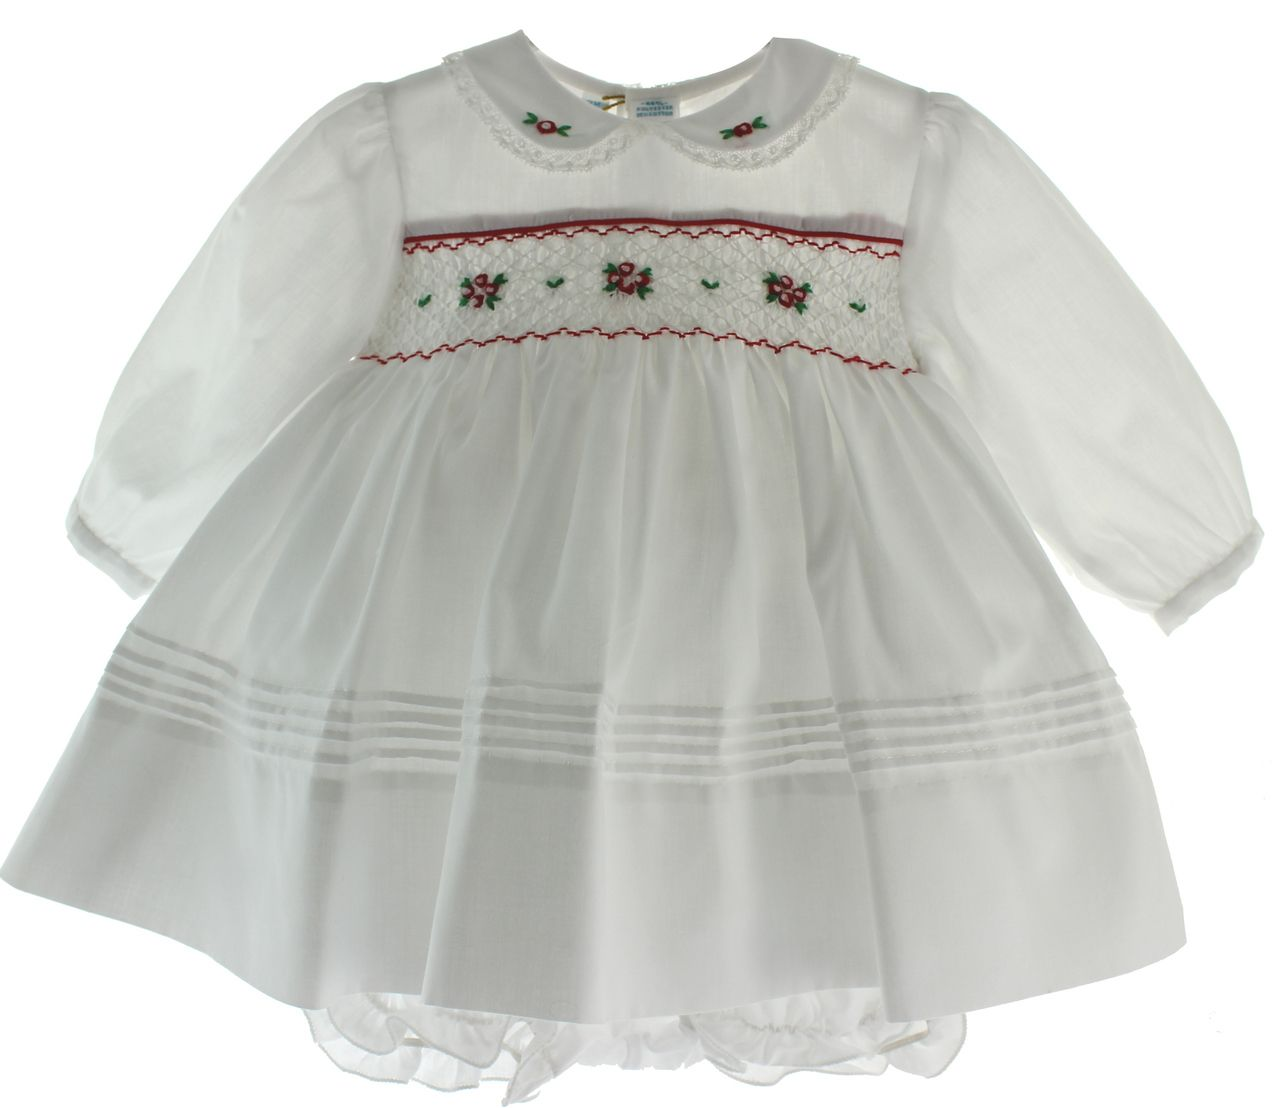 Hiccups Childrens Boutique - Infant Girls Long Sleeve White ...